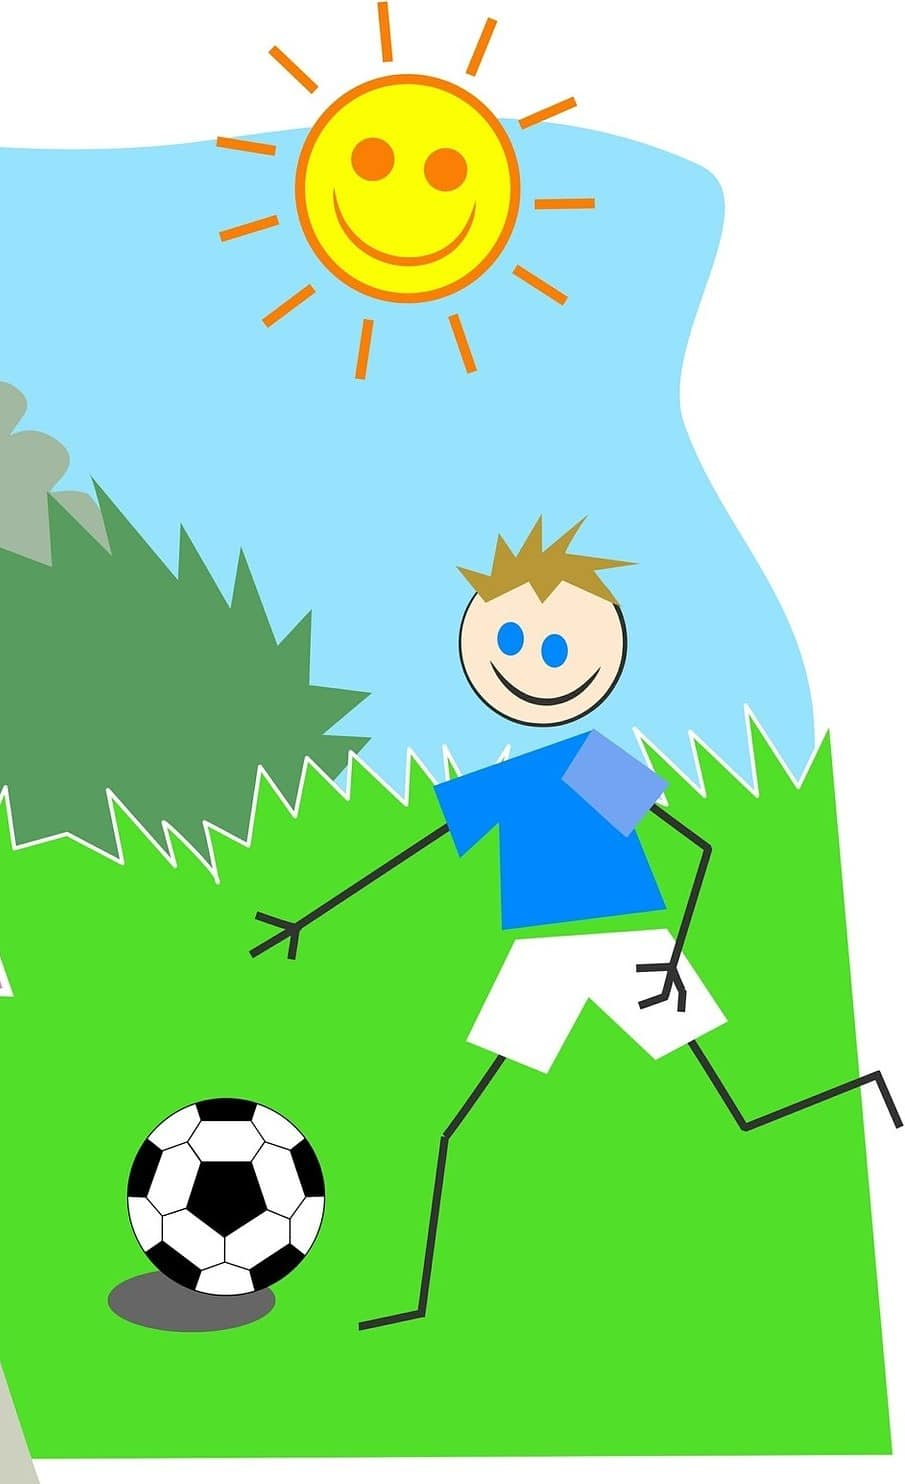 Child's drawing of child playing soccer